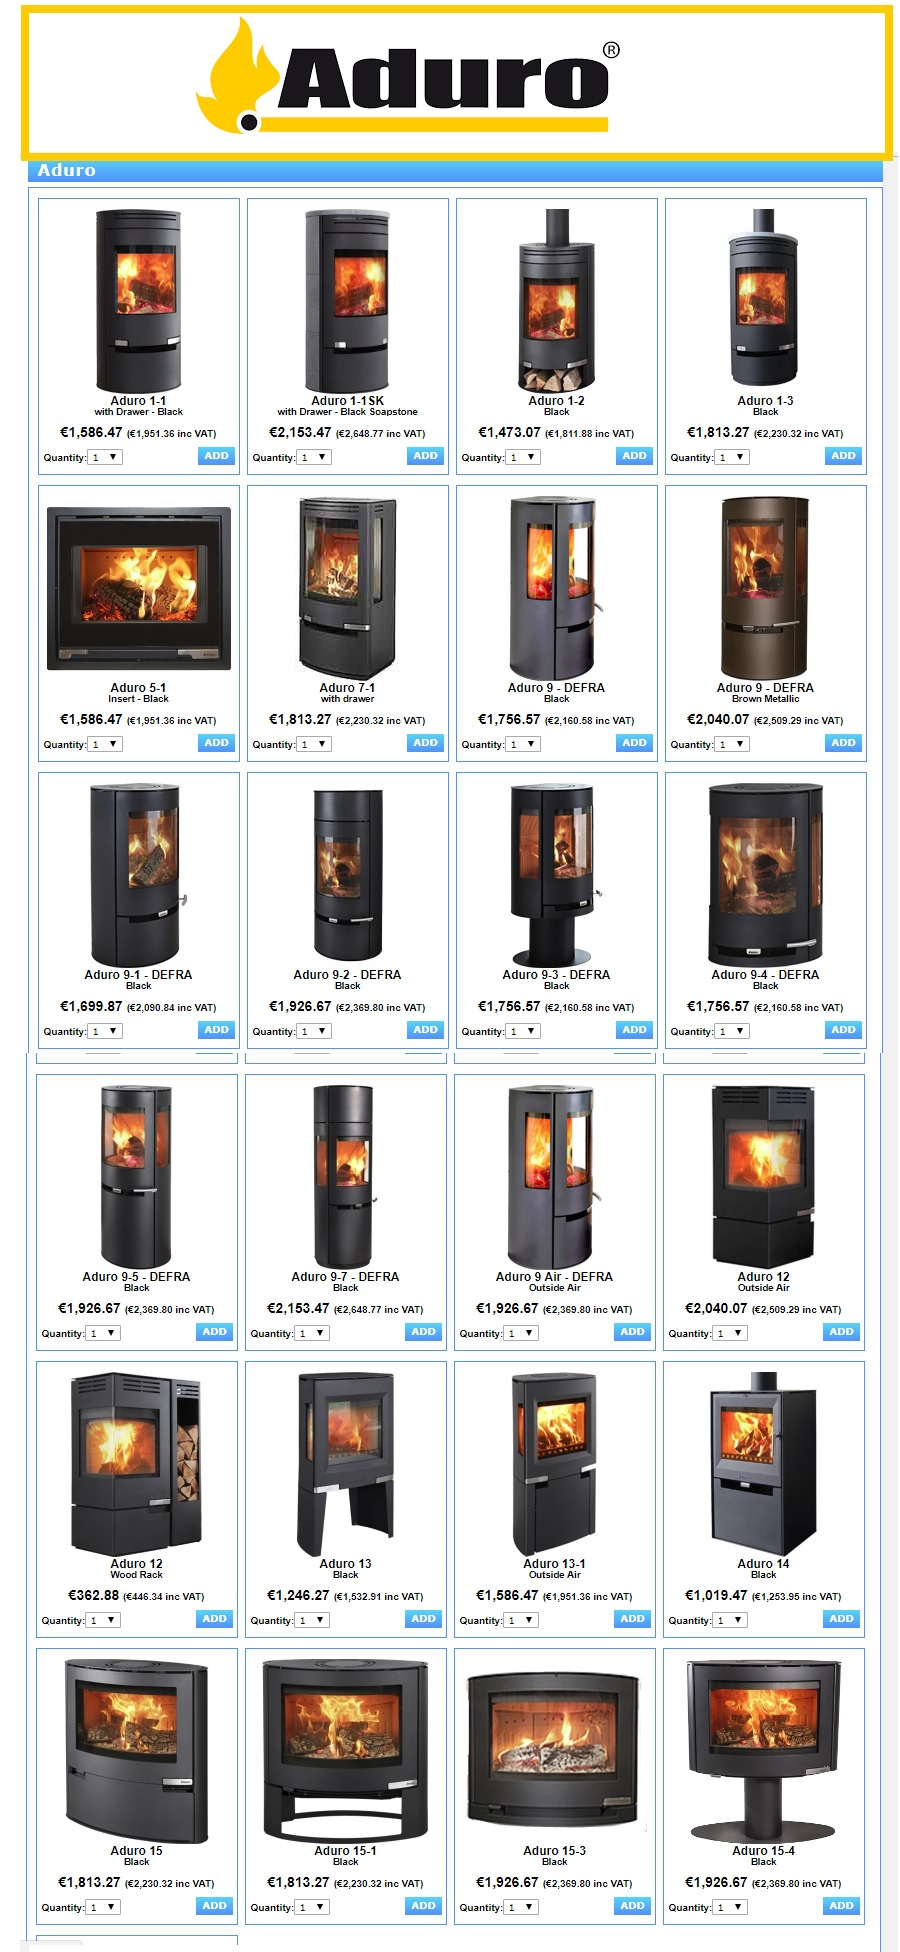 Auduro Wood Stoves at TheGasCompany.ie